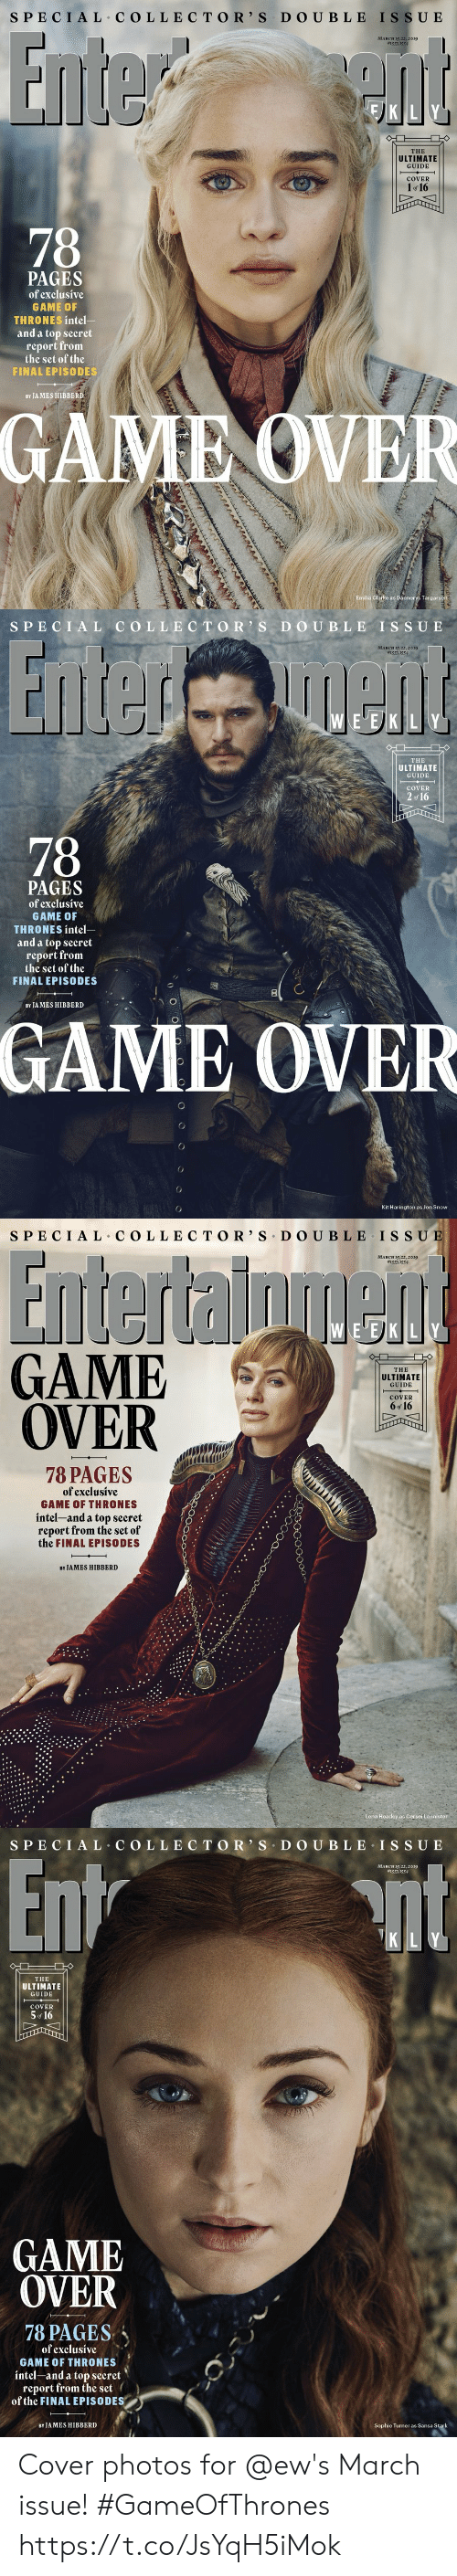 Game of Thrones, Memes, and Sophie Turner: S PECIAL COLLECTO R' S D O UBLE ISSU E  MARCH I5 22,2019  #1553/1554  THE  ULTIMATE  GUIDE  COVER  1 or 16  PAGES  of exclusíve  GAME OF  THRONES intel-  and a top secret  report from  the set of the  FINAL EPISODES  BY JAMES HIBBERD  GAME OVER  Emilia C  e as Daenerys Targar   SPECI AL COLLEC TOR S D O UBLE IS SUE  MARCH I5/22,2019  #15531155  E EK LY  THE  ULTIMATE  GUIDE  COVER  2  of 16  78  PAGES  of exclusíve  GAME 0  THRONES intel  and a top secret  report from  the set of the  FINAL EPISODES  8  BY JA MES HIBBERD  GAME OVER  Kit Harington as Jon Snow   SPECIAL C OLLE CTOR' S DO UBLE IS SU  MARCH 15/22,2019  #1553/1554  EVE)KILY  GAME  OVER  THE  ULTIMATIE  GUIDE  COVER  6 of 16  017  78 PAGES  of exclusíve  GAME OF THRONES  íntel-and a top secret/  report from the set of  the FINAL EPISODES  BY JAMES HIBBERD  Lena Headey as Cersei Lannister   S PECIAL COLLEC TOR' S D O U BLE ISSUE  MARCH 15/22,2019  #15531554  K LY  THE  ULTIMATE  GUIDE  COVER  5 16  GAME  OVER  78 PAGES、  of exclusíve  GAME OF THRONES  intel-and a top secret  report from the set  of the FINAL EPISODES  BY JAMES HIBBERD  Sophie Turner as Sansa Stark Cover photos for @ew's March issue! #GameOfThrones https://t.co/JsYqH5iMok